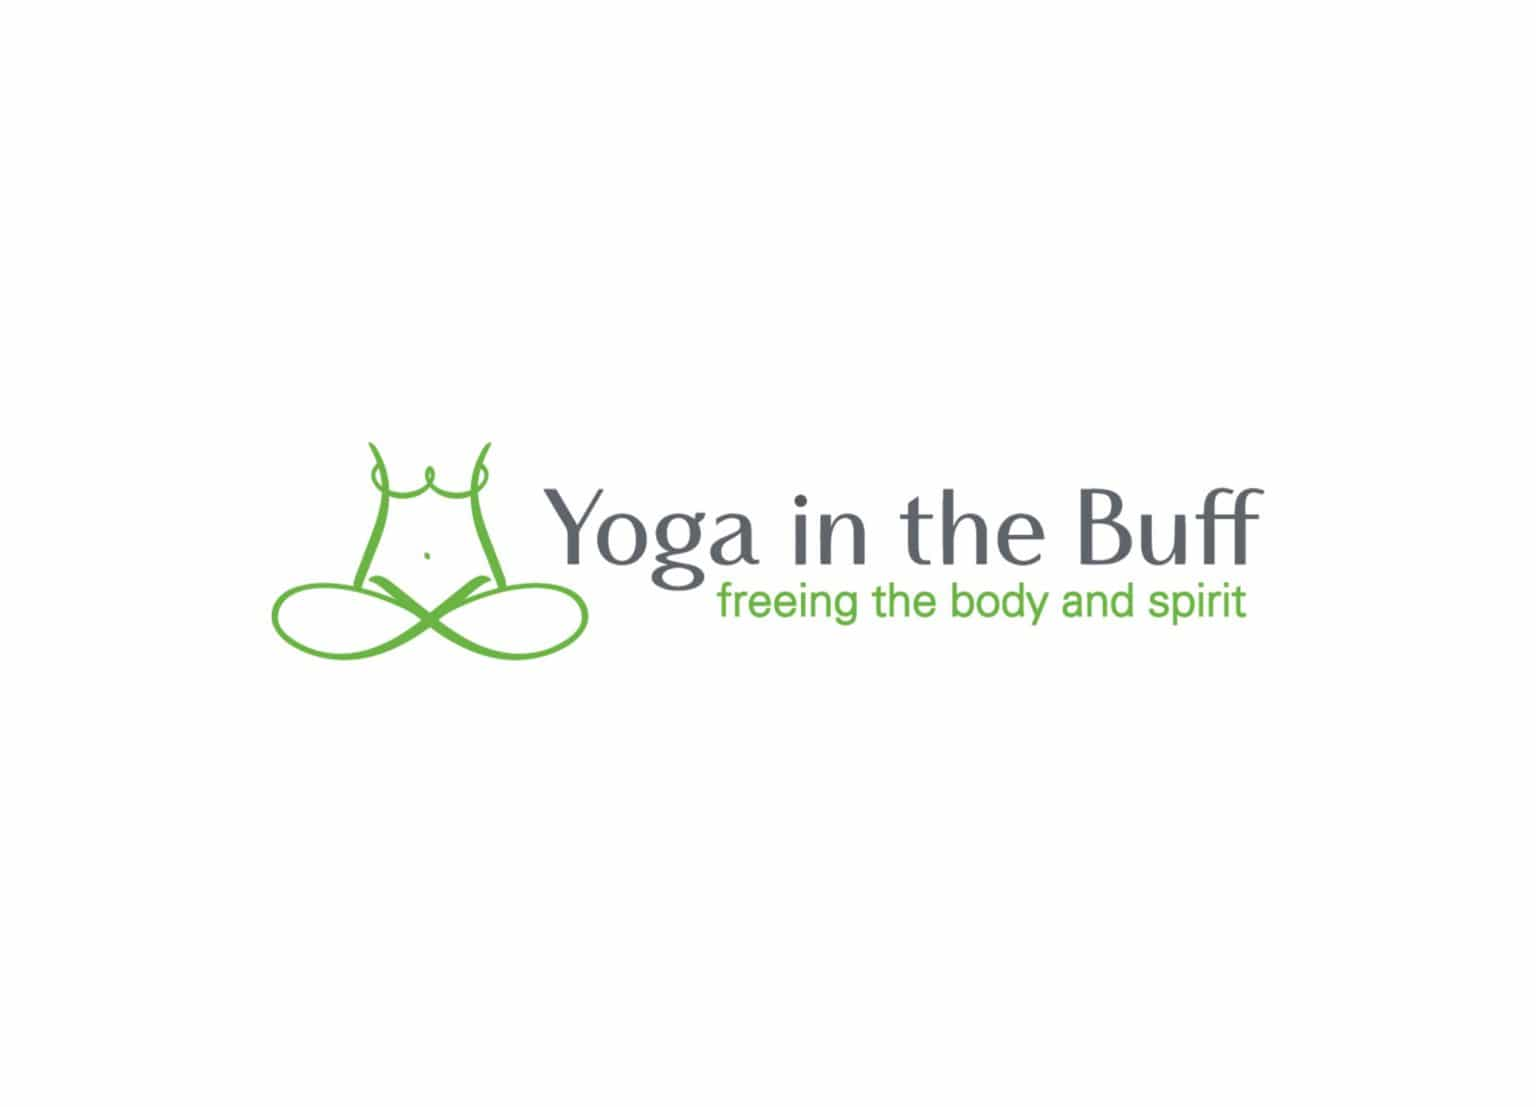 Yoga in the Buff brand identity logo design in green, white, and grey with tagline, Freeing the Body and Spirit.